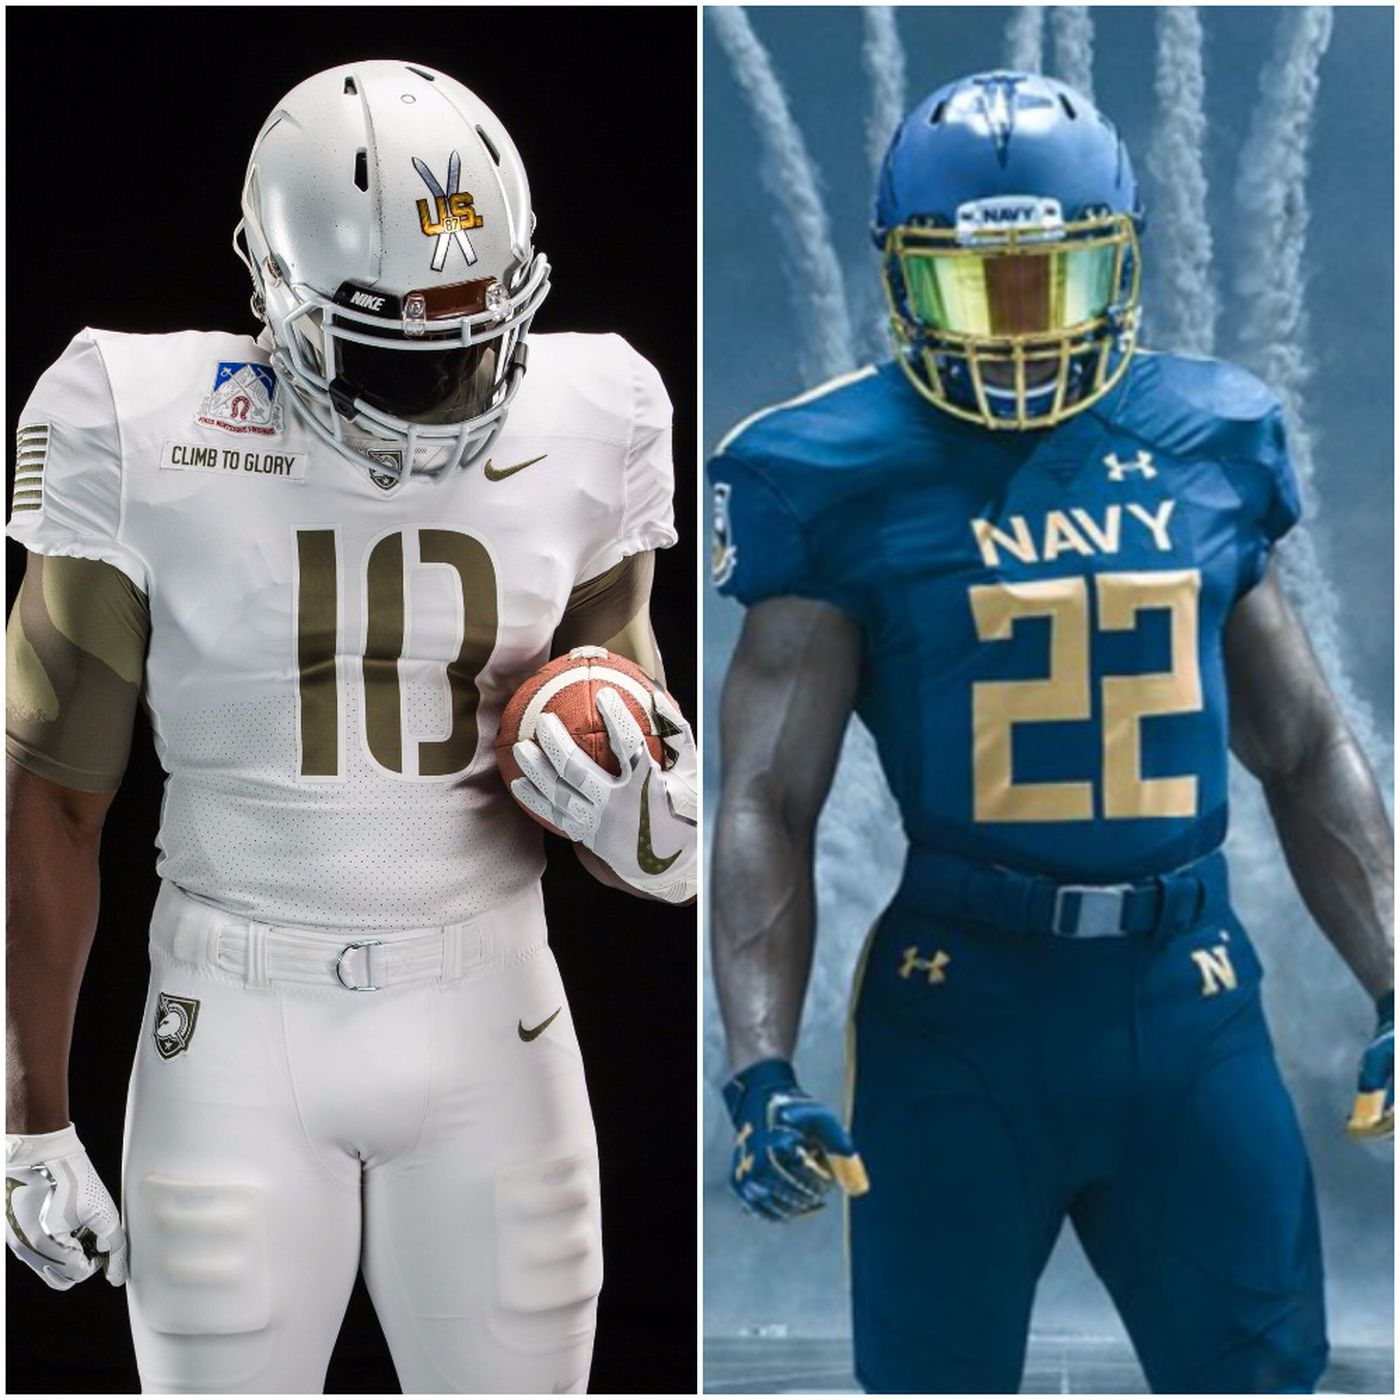 online store df1c9 87573 Army-Navy Game uniforms 2017: What these beauties mean ...